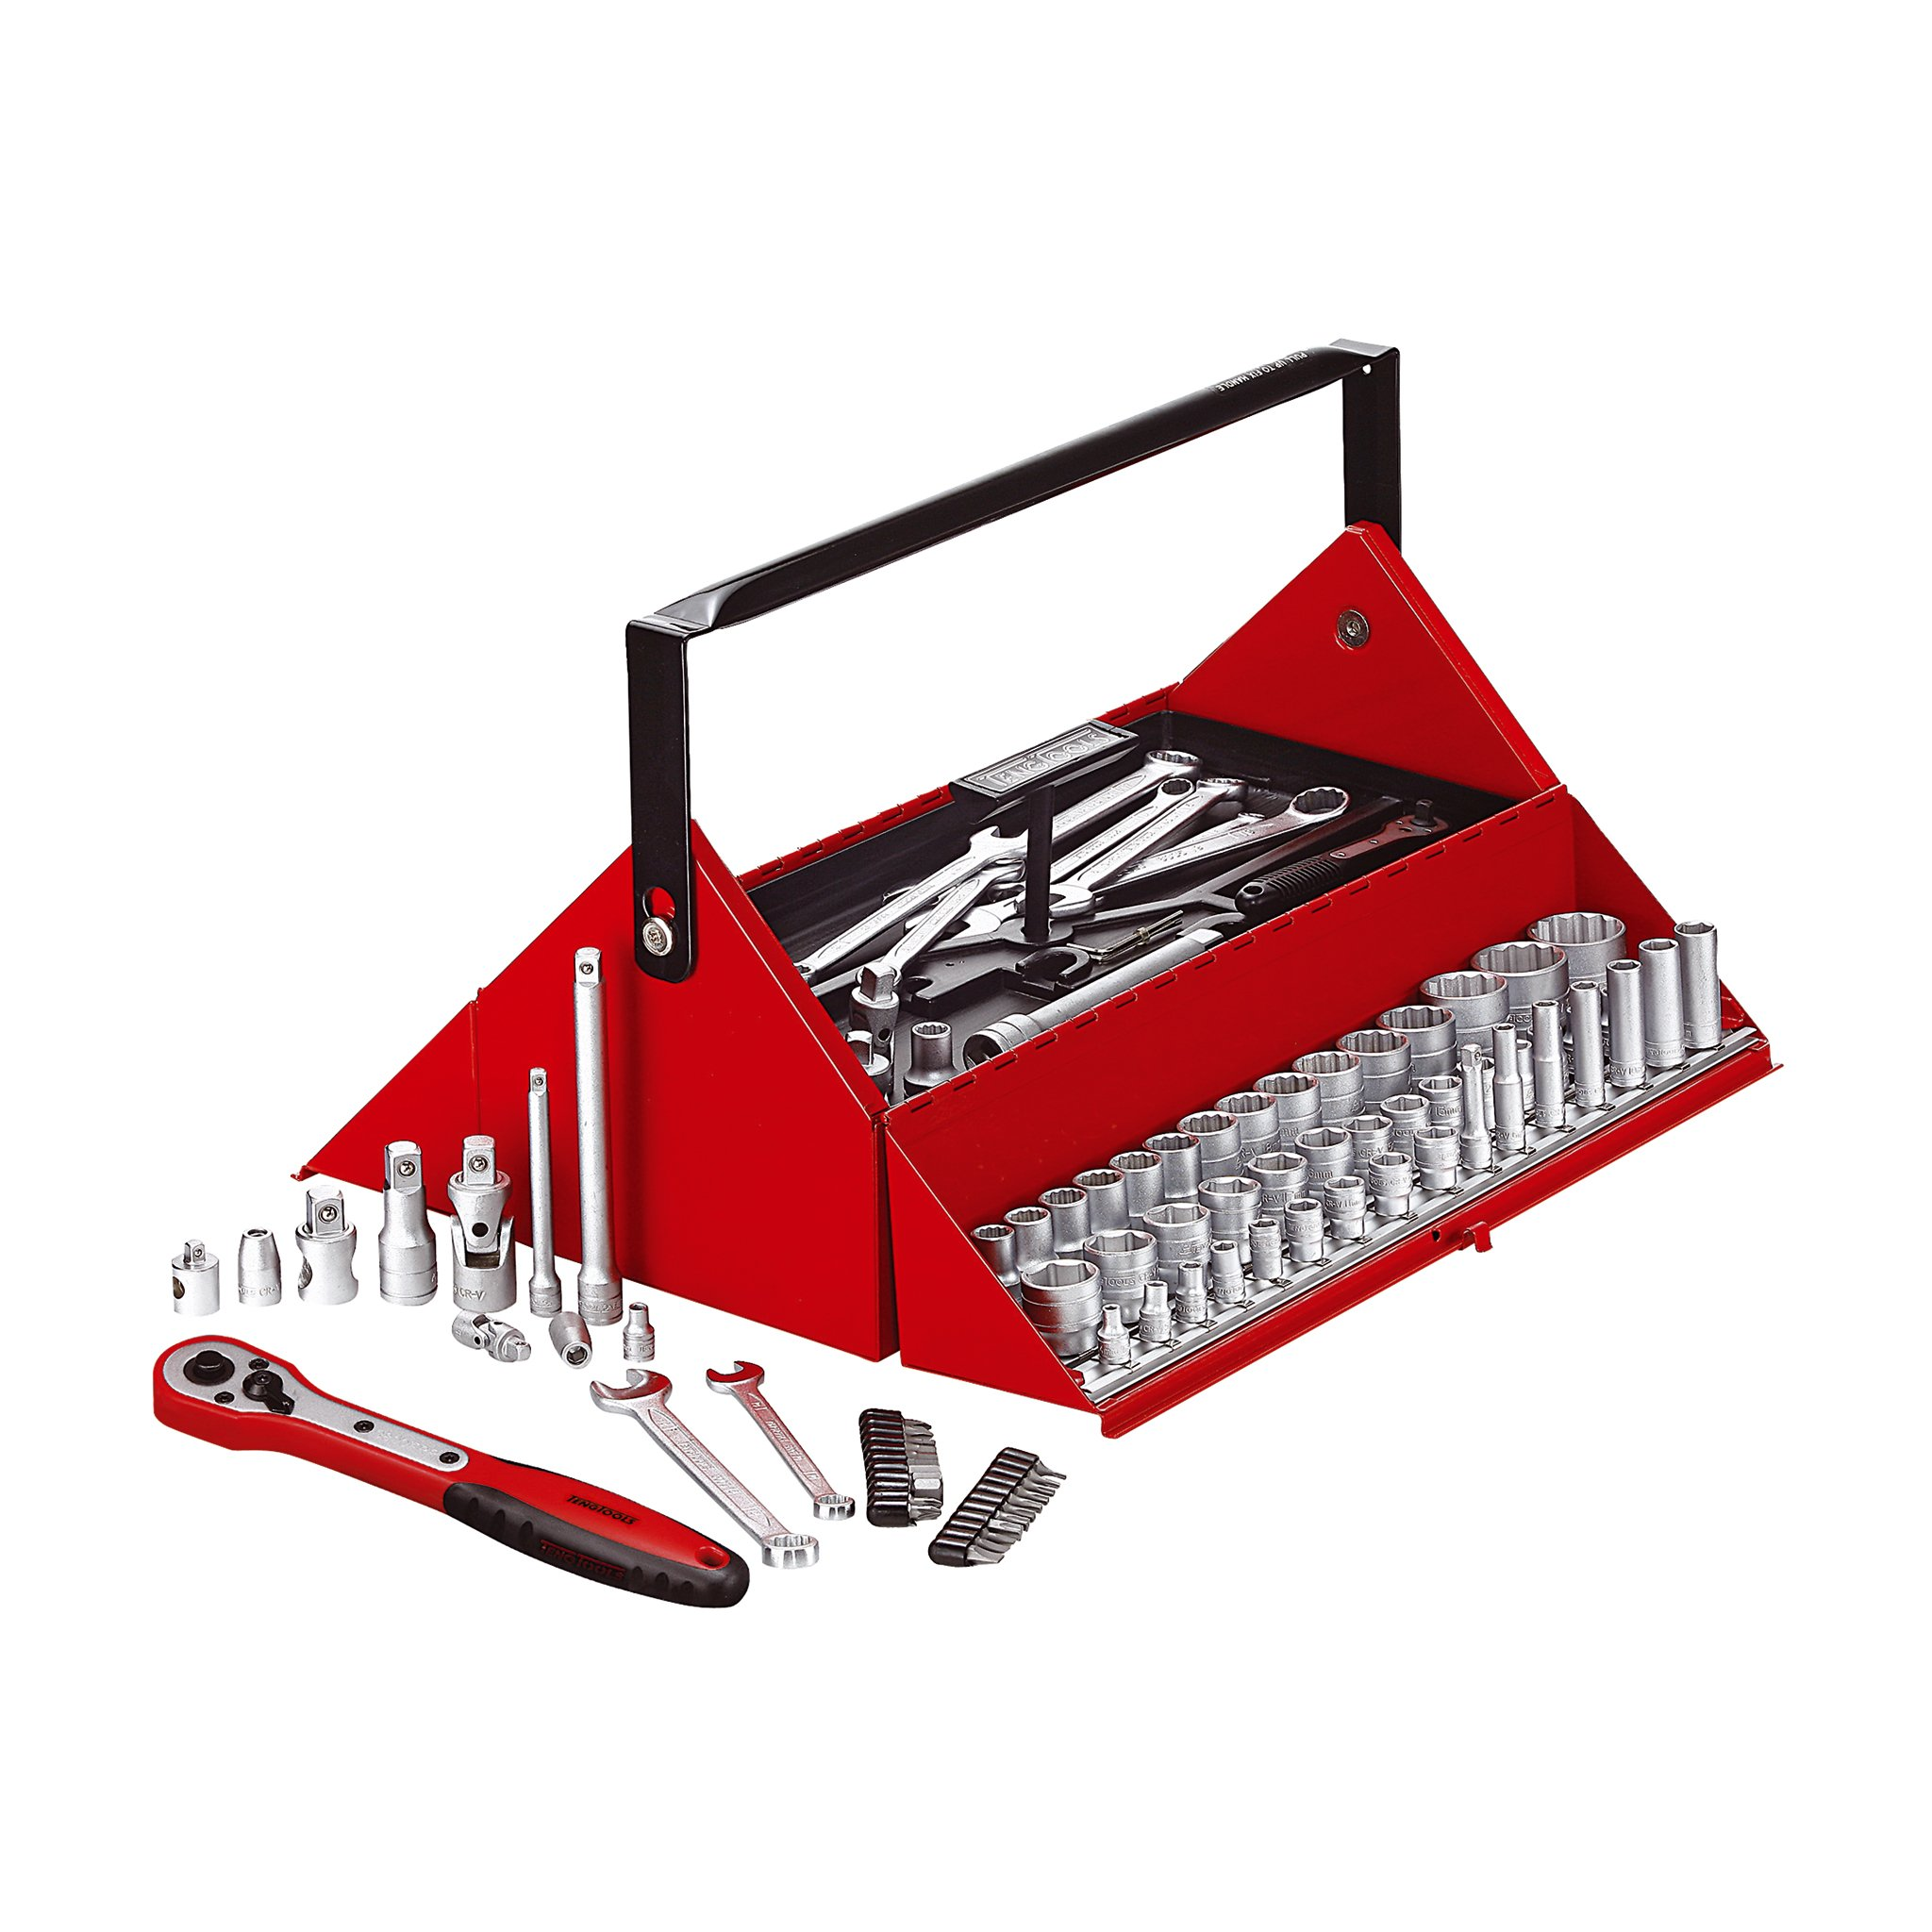 Teng Tools 187 Piece Mega Rosso Mechanics Tool Kit - TC187